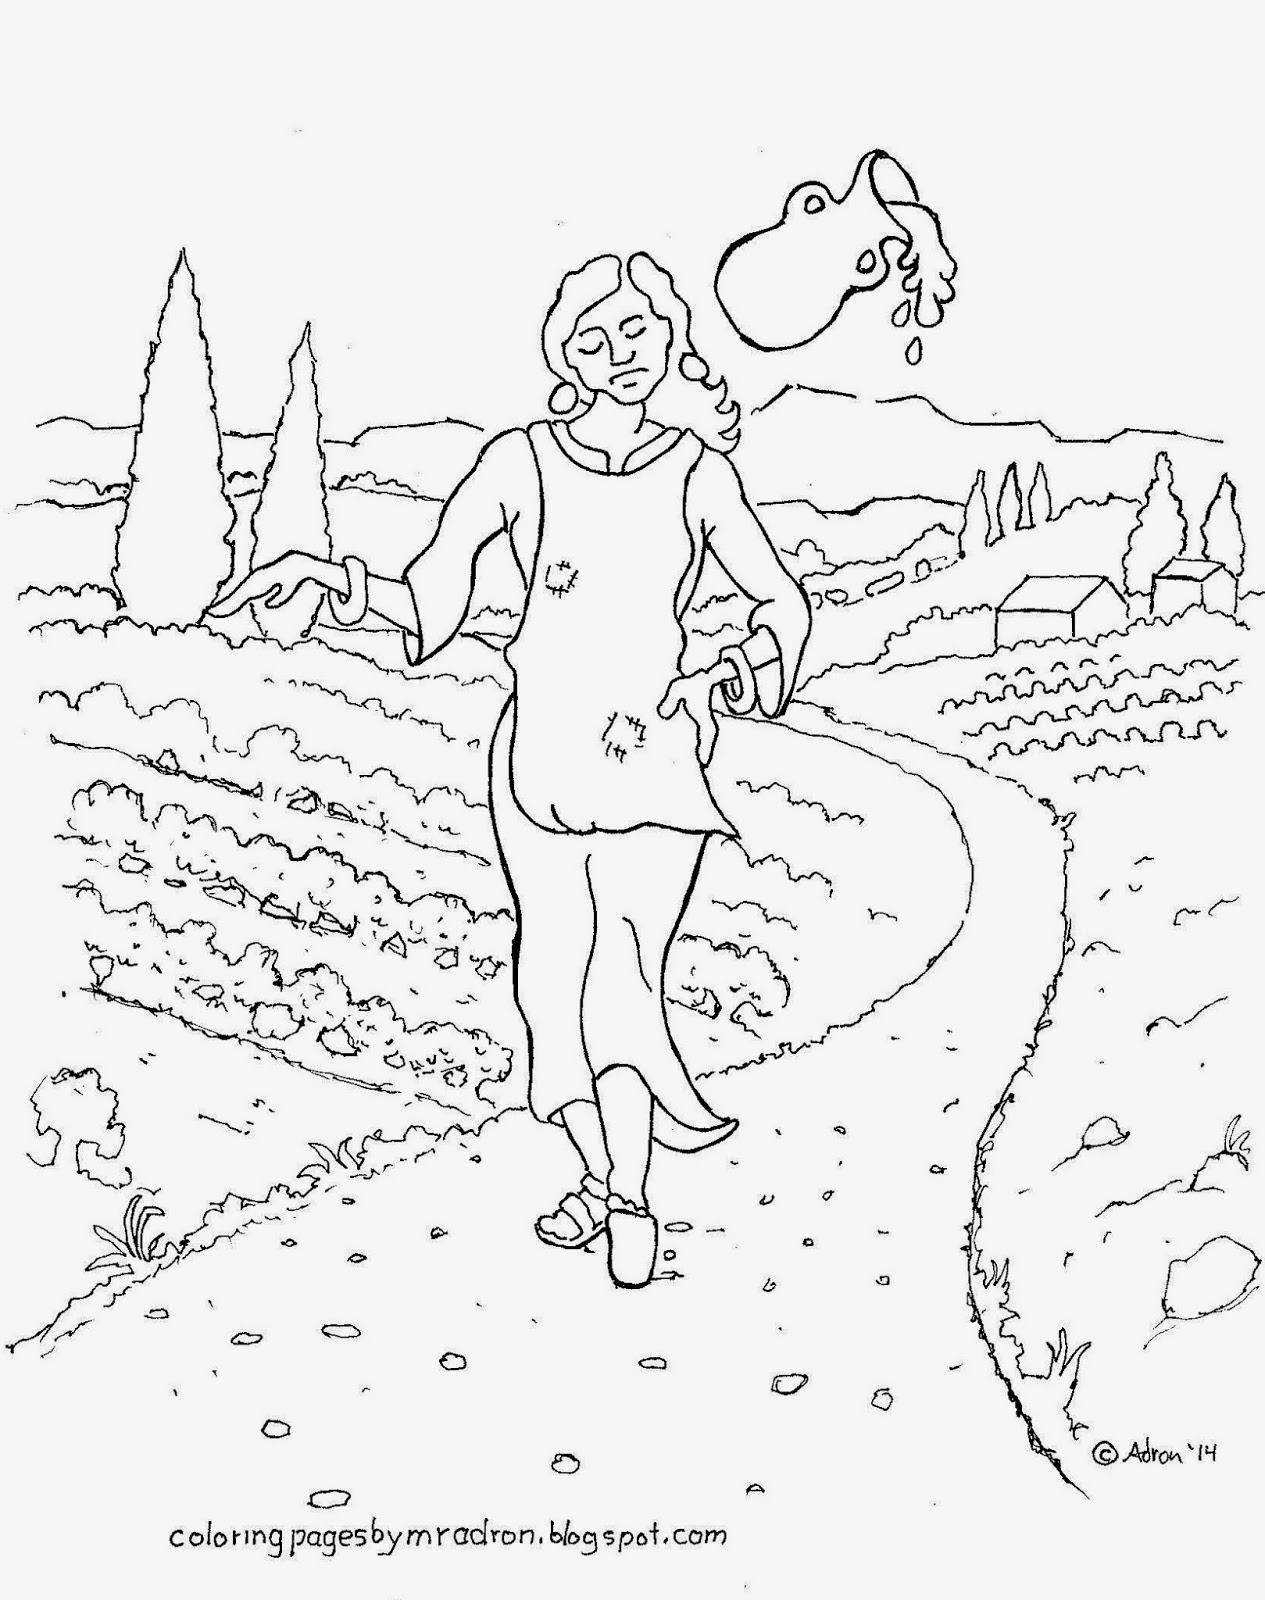 The milkmaid fable to print and color.